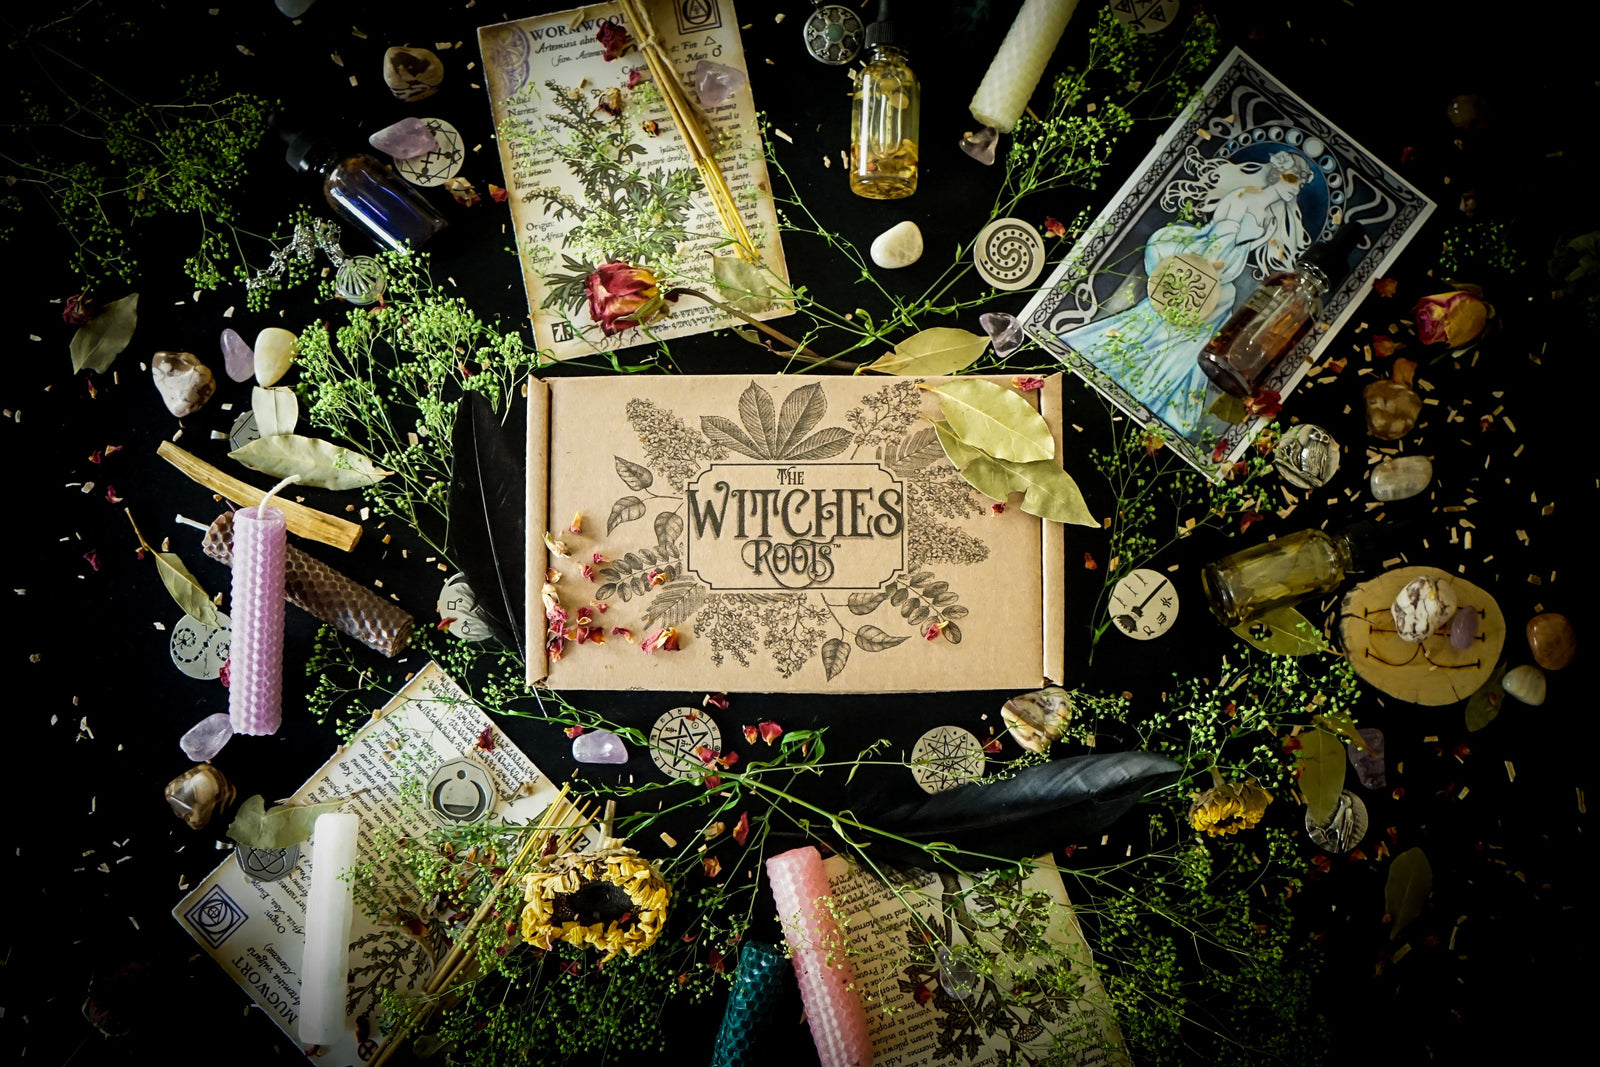 The Witches Roots™ - February 2019 - One Time Purchase (United States)